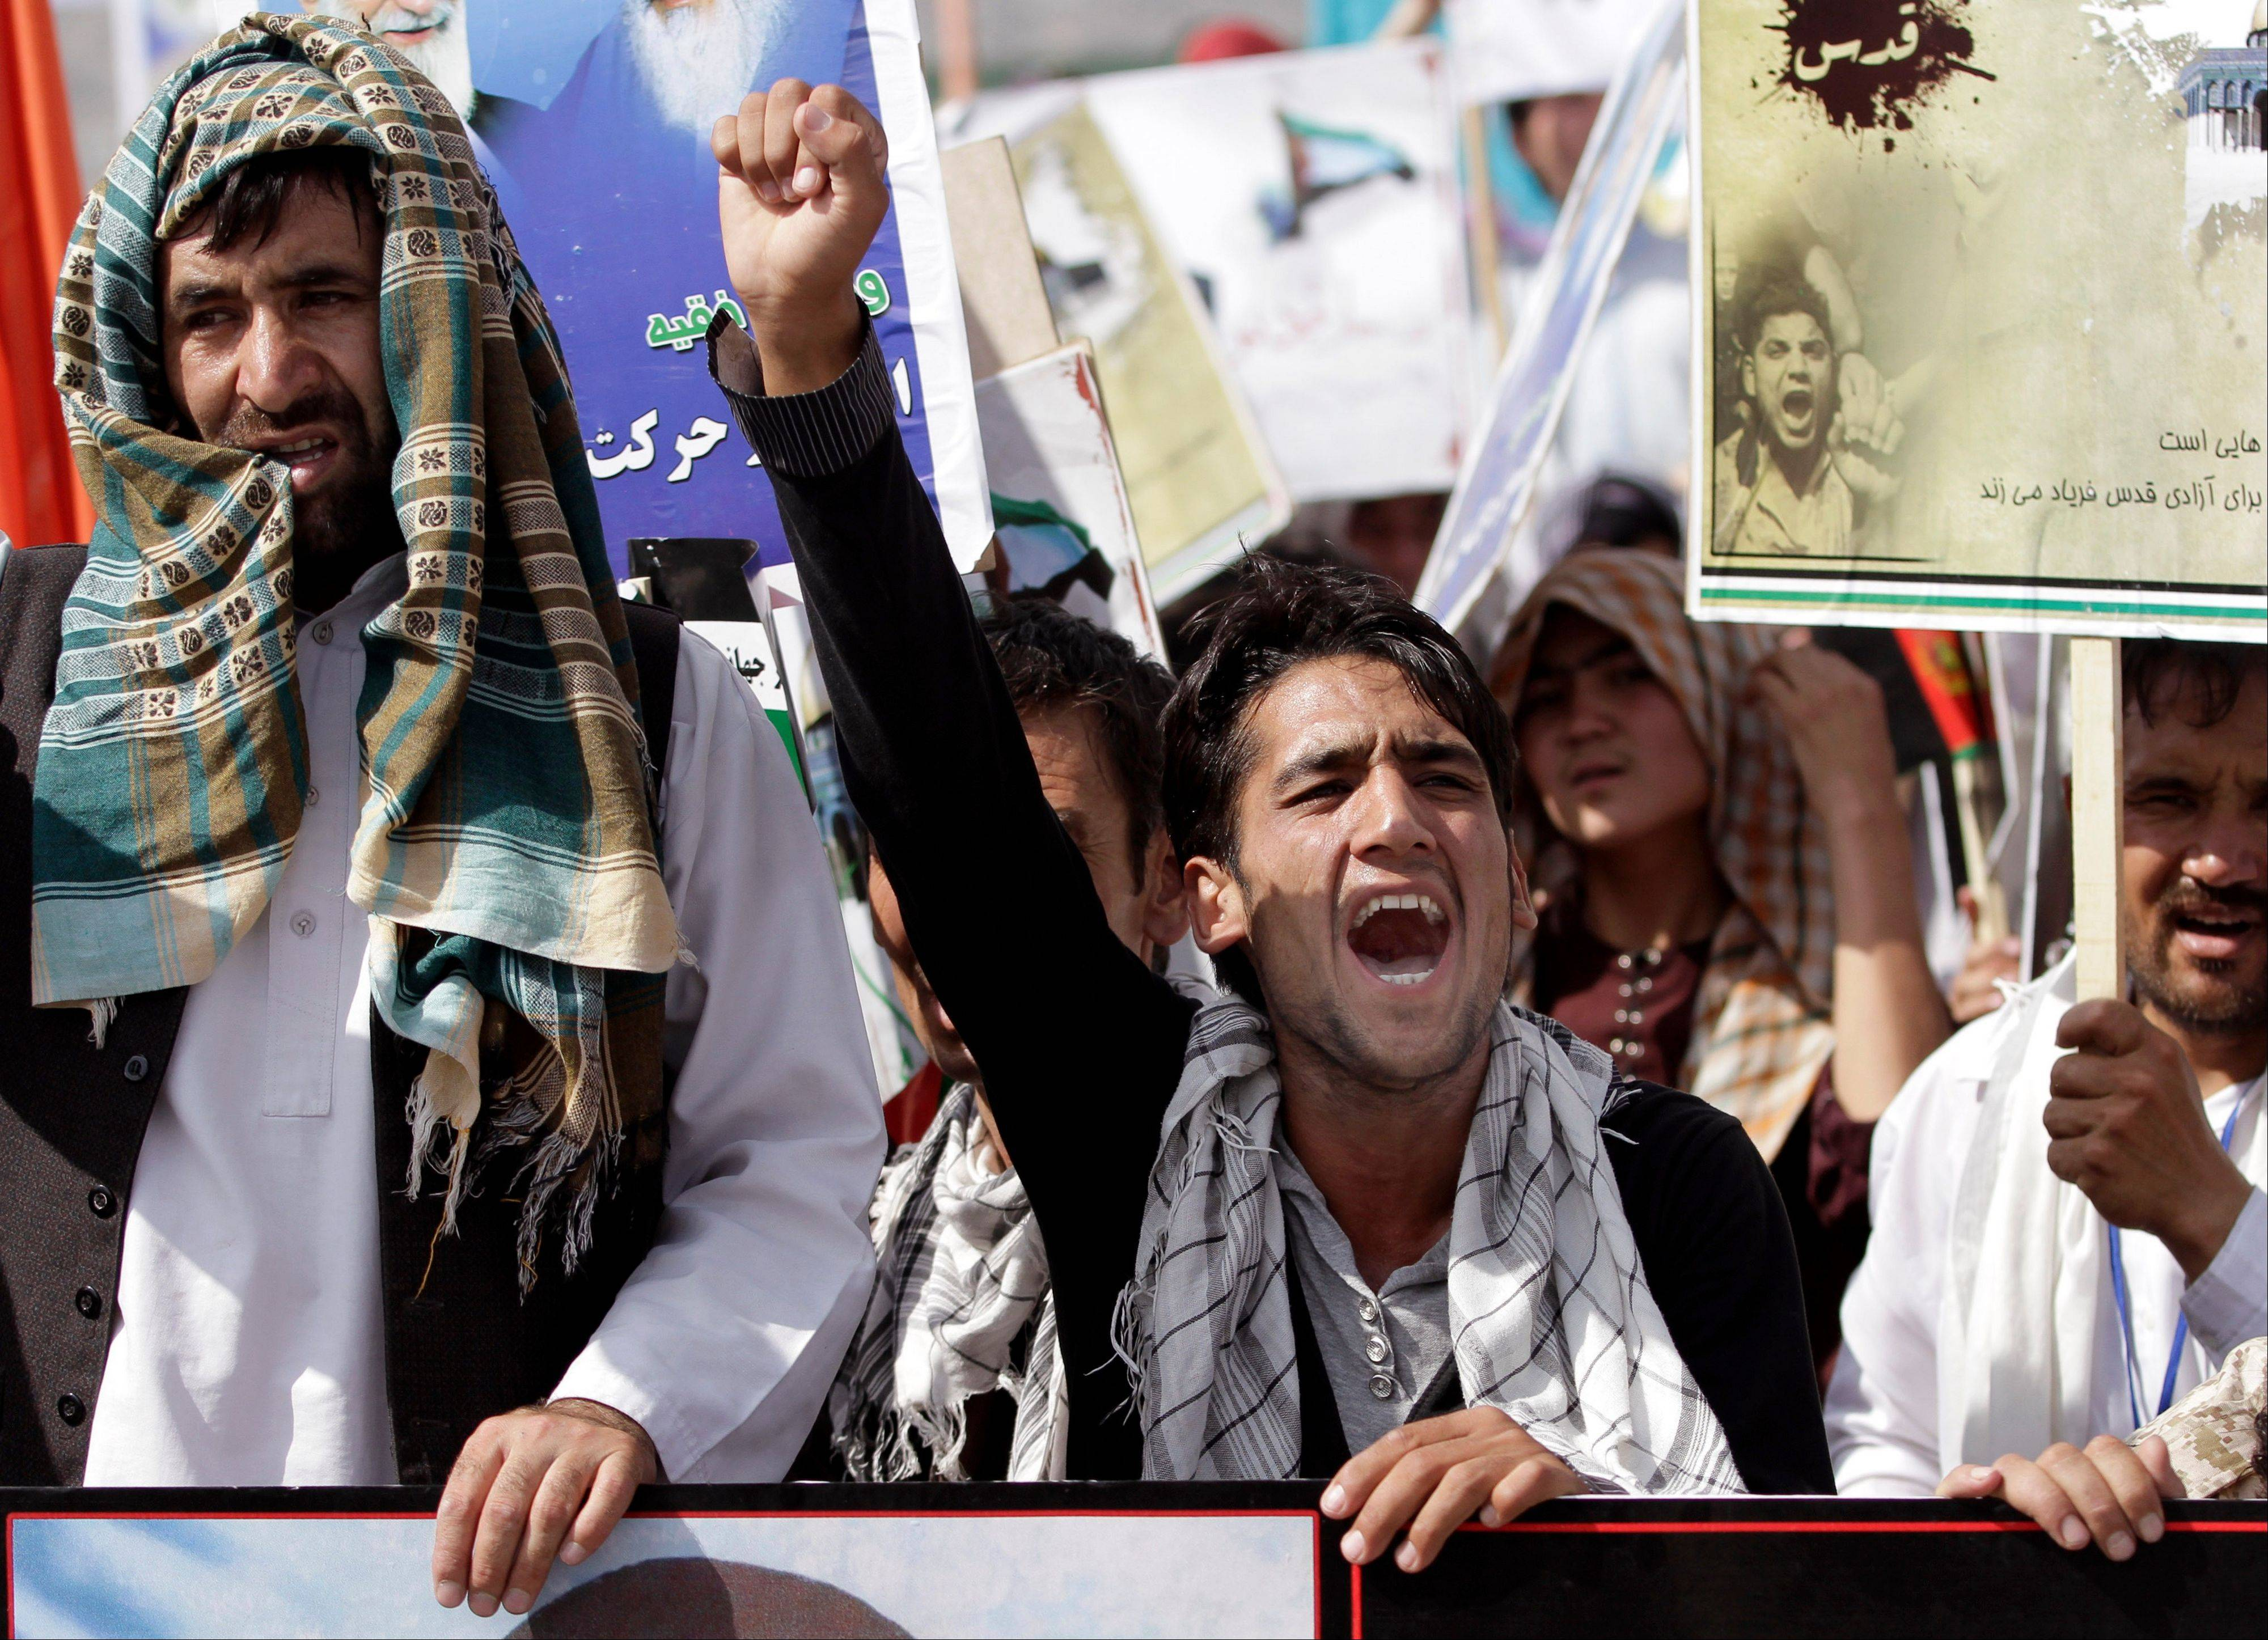 Afghan men shout anti-Israel slogans during a protest Friday in Kabul.